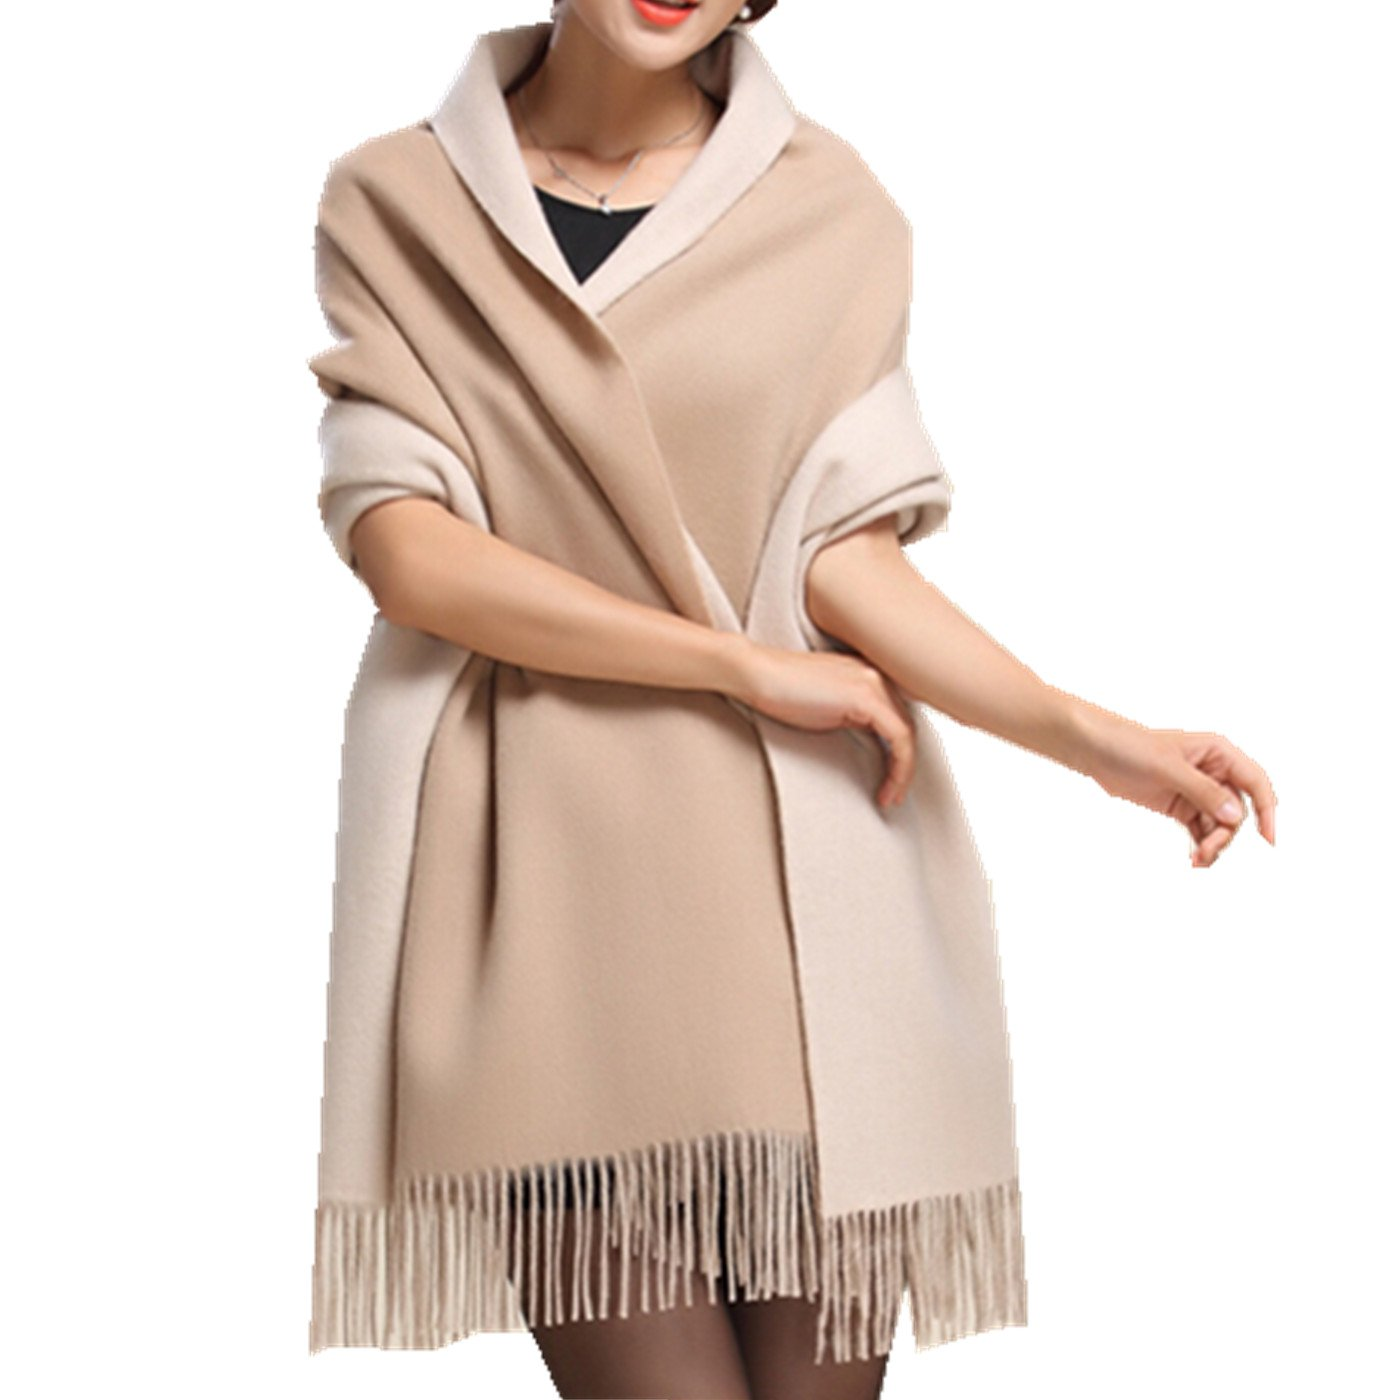 Gift Box Saferin Large 78''x28'' Women Soft Cashmere Wool Wraps Shawls Stole Scarf Double-Sided Thick Warm Winter (Khaki Beige)